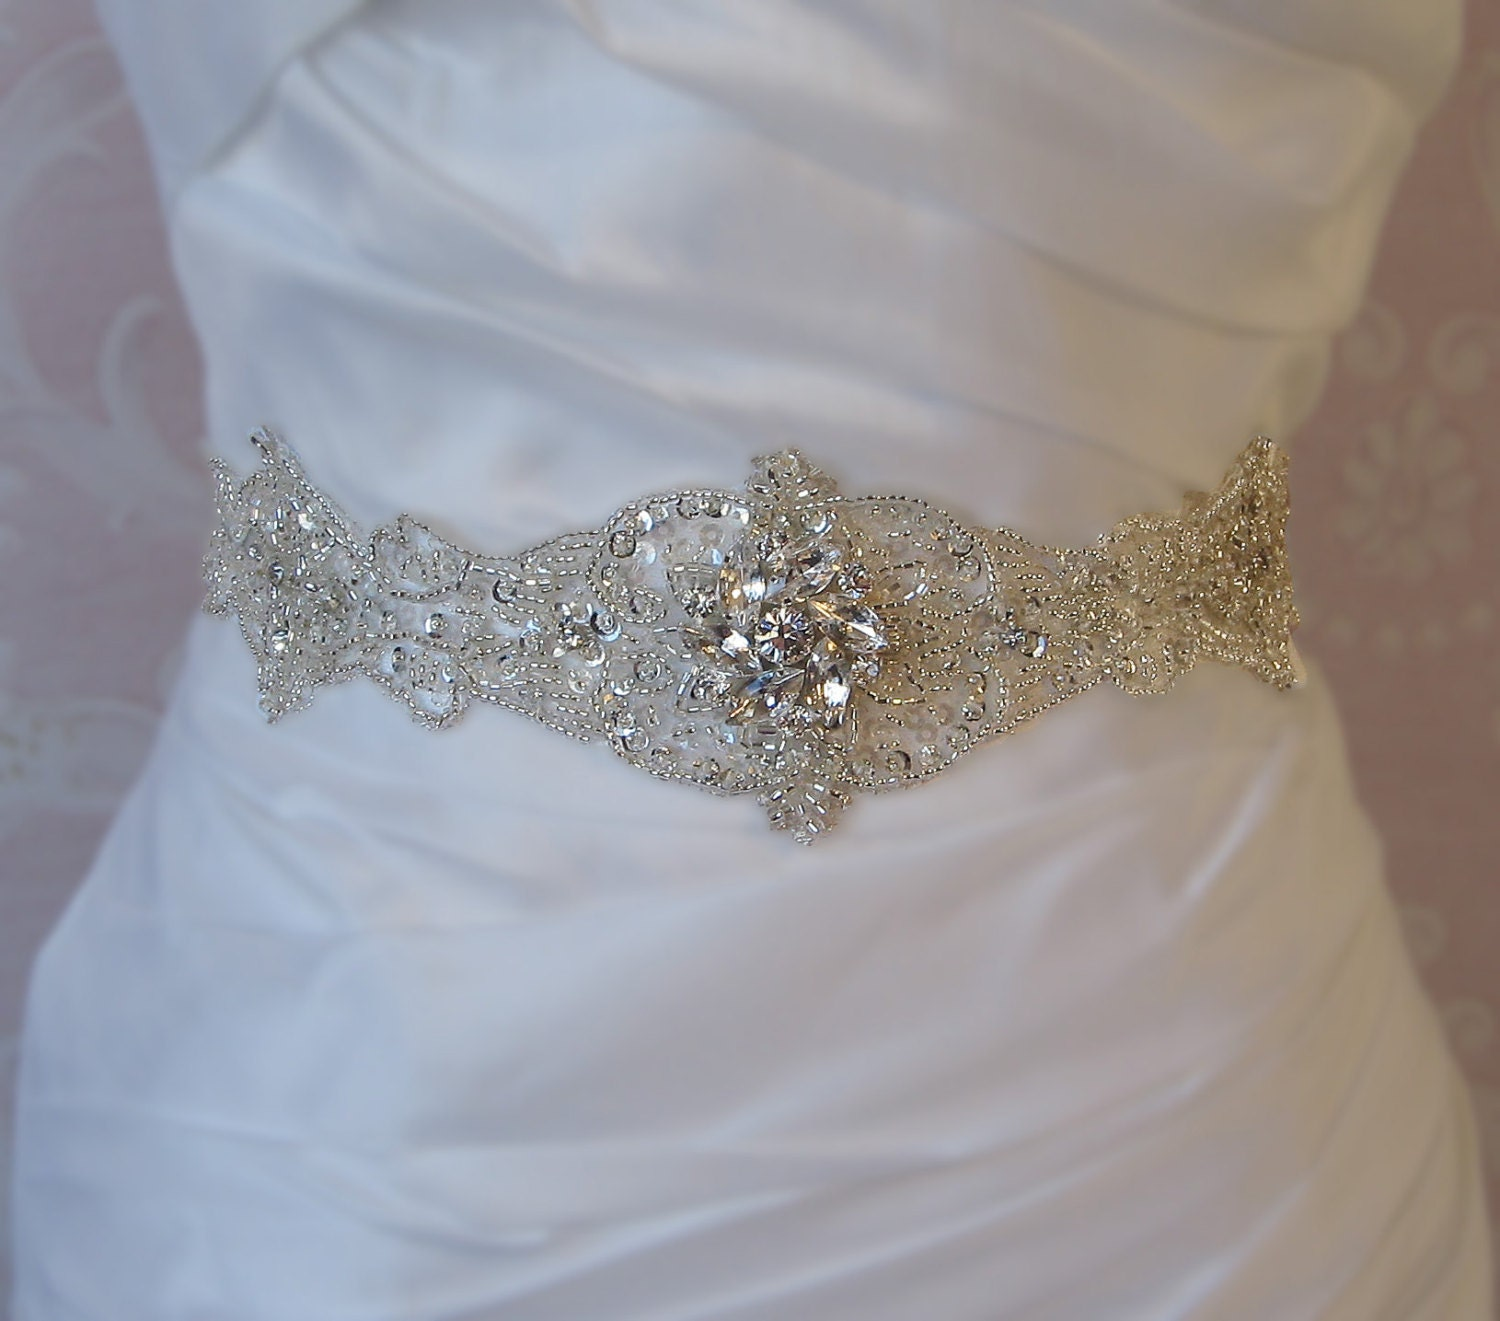 Crystal Rhinestone Sash, Bridal Sash, Beaded Wedding Belt - JOCELYN